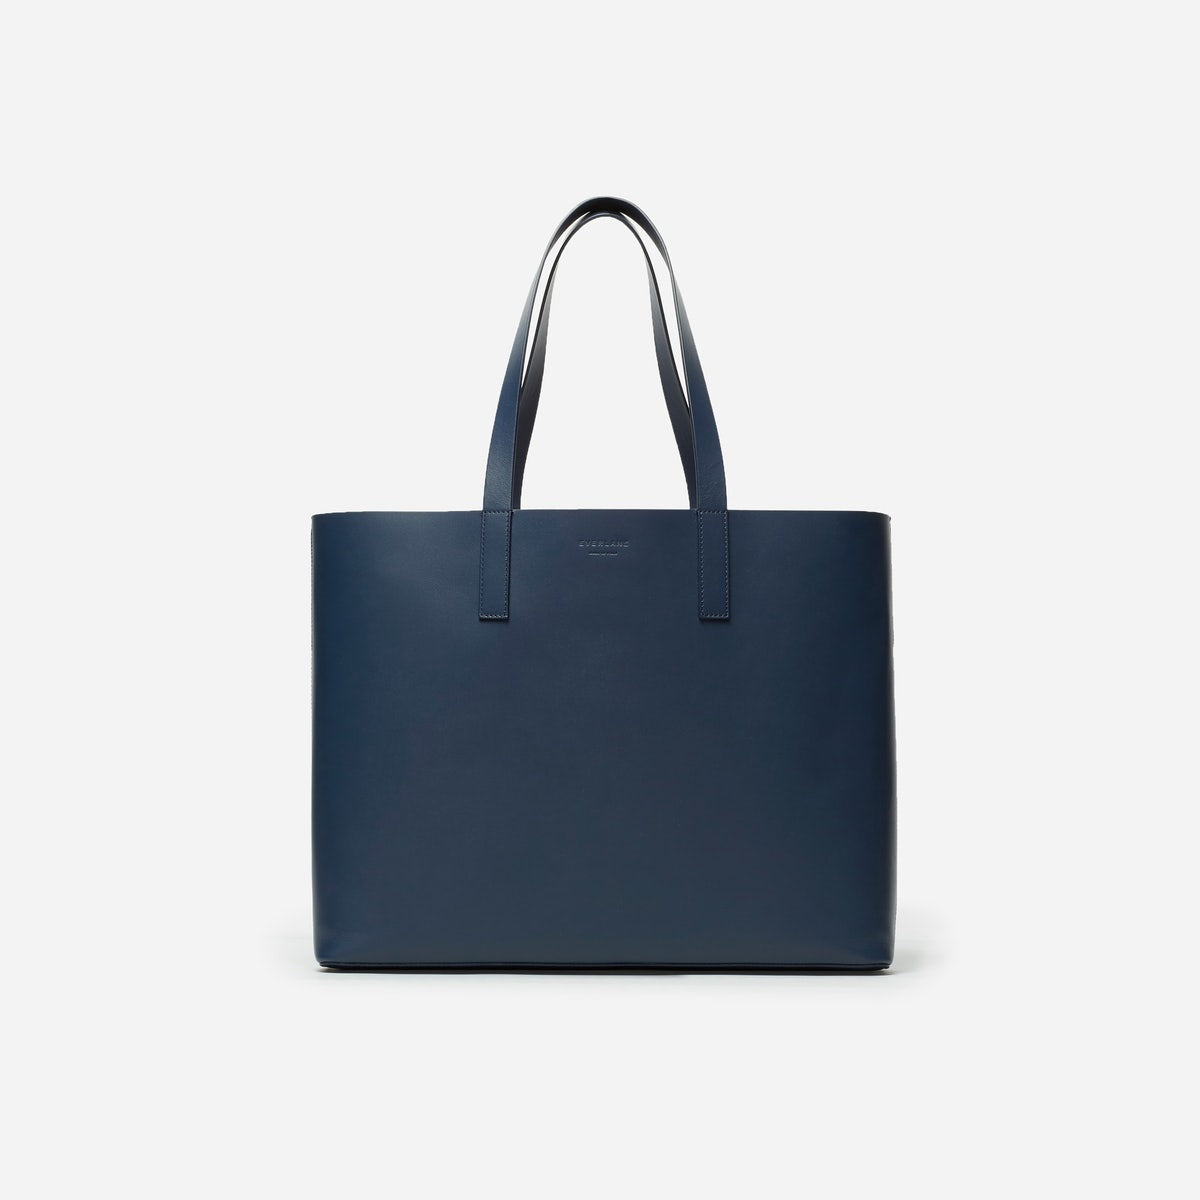 Everlane Everyday Leather Tote in Petra